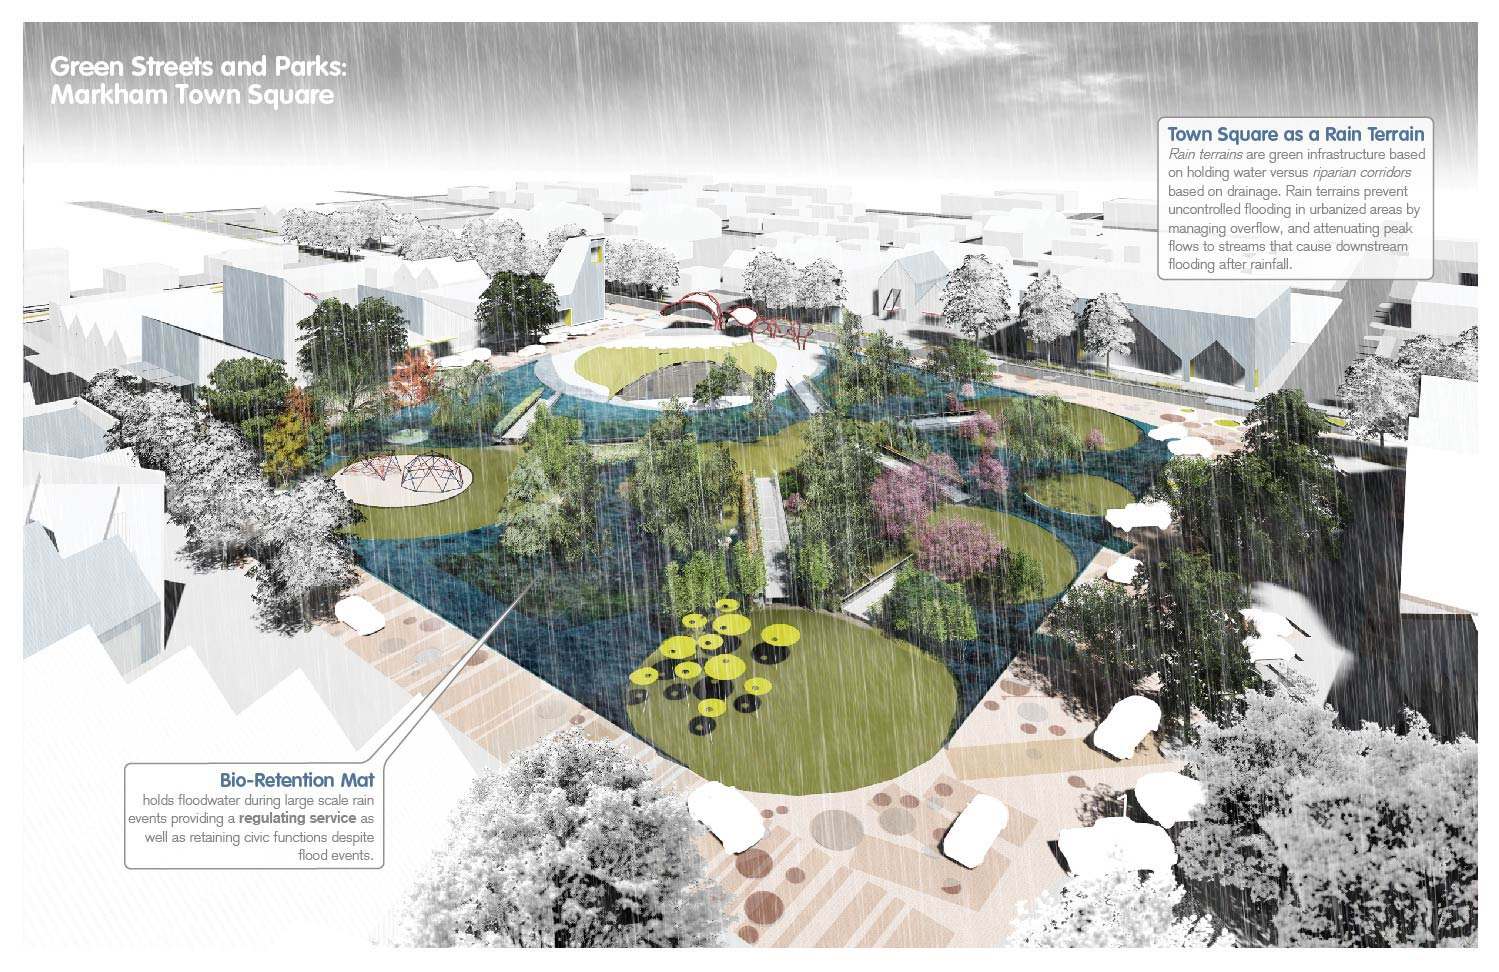 Town Square: designed as a bio-retention mat to hold floodwater during storms. University of Arkansas Community Design Center